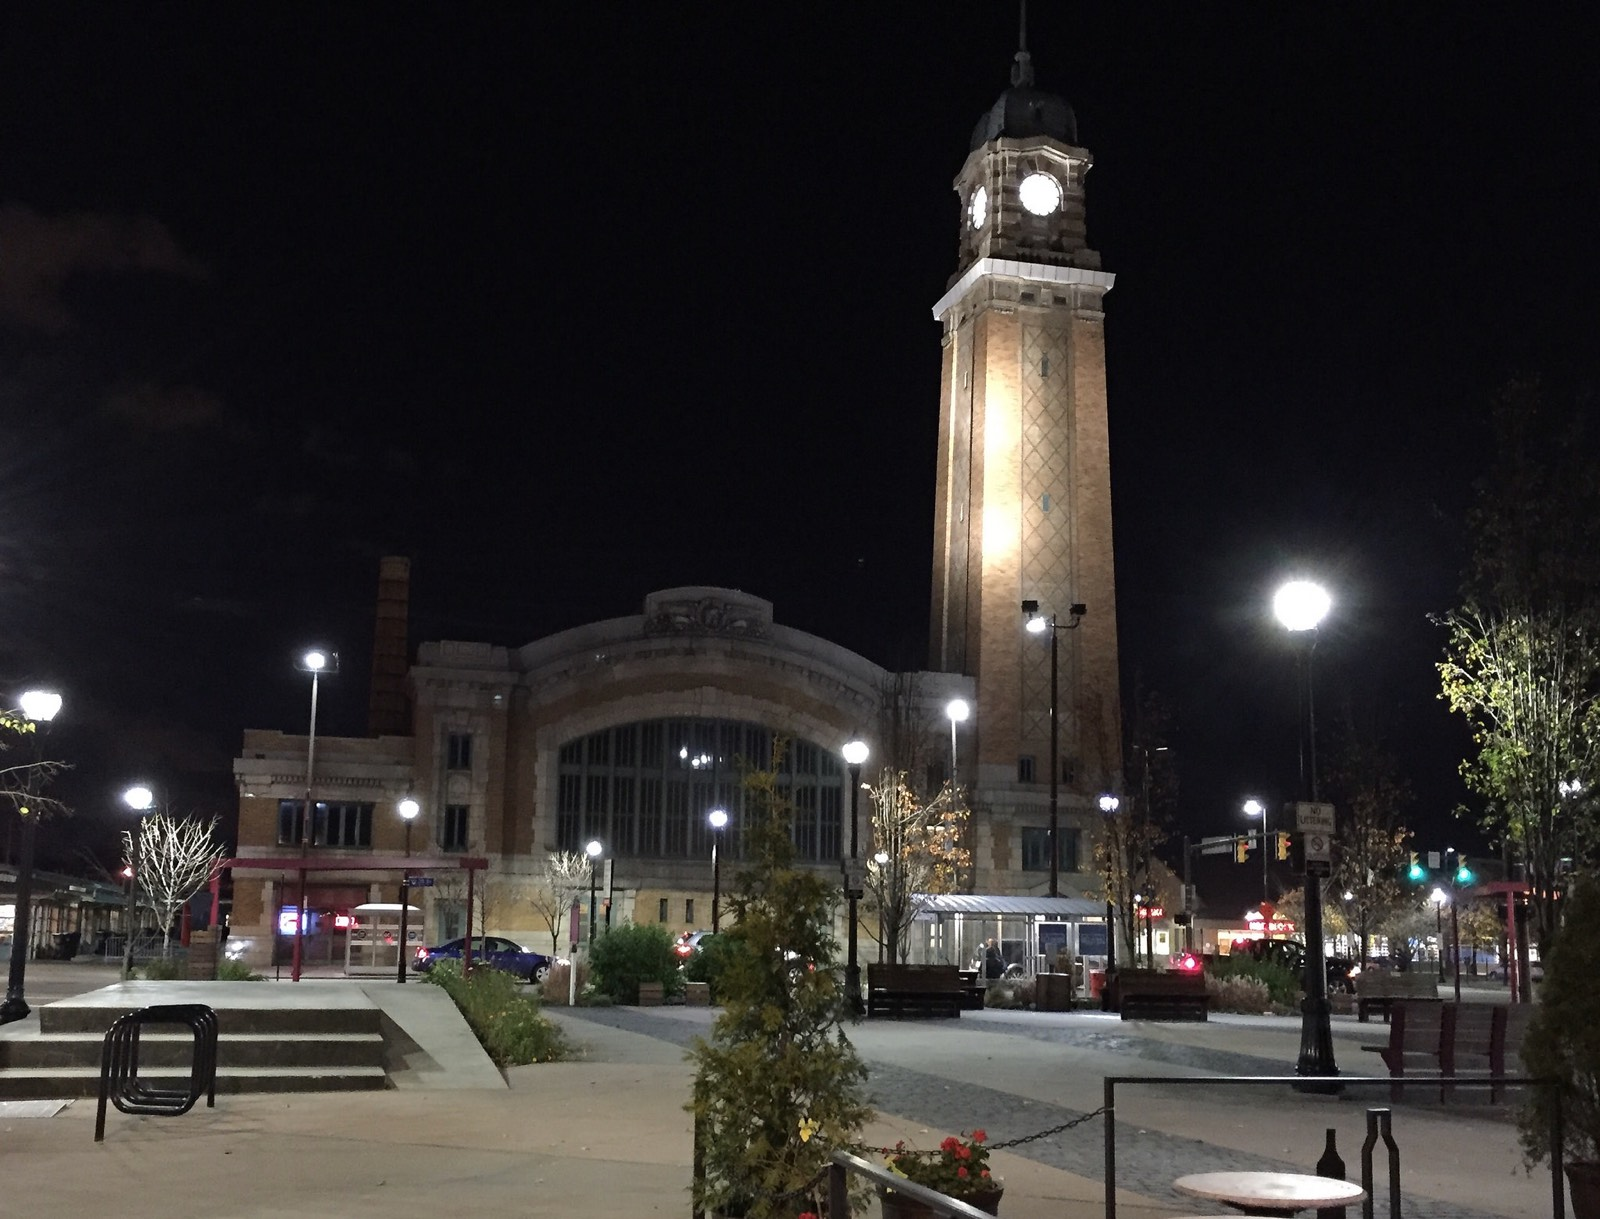 Cleveland's West Side Market at night